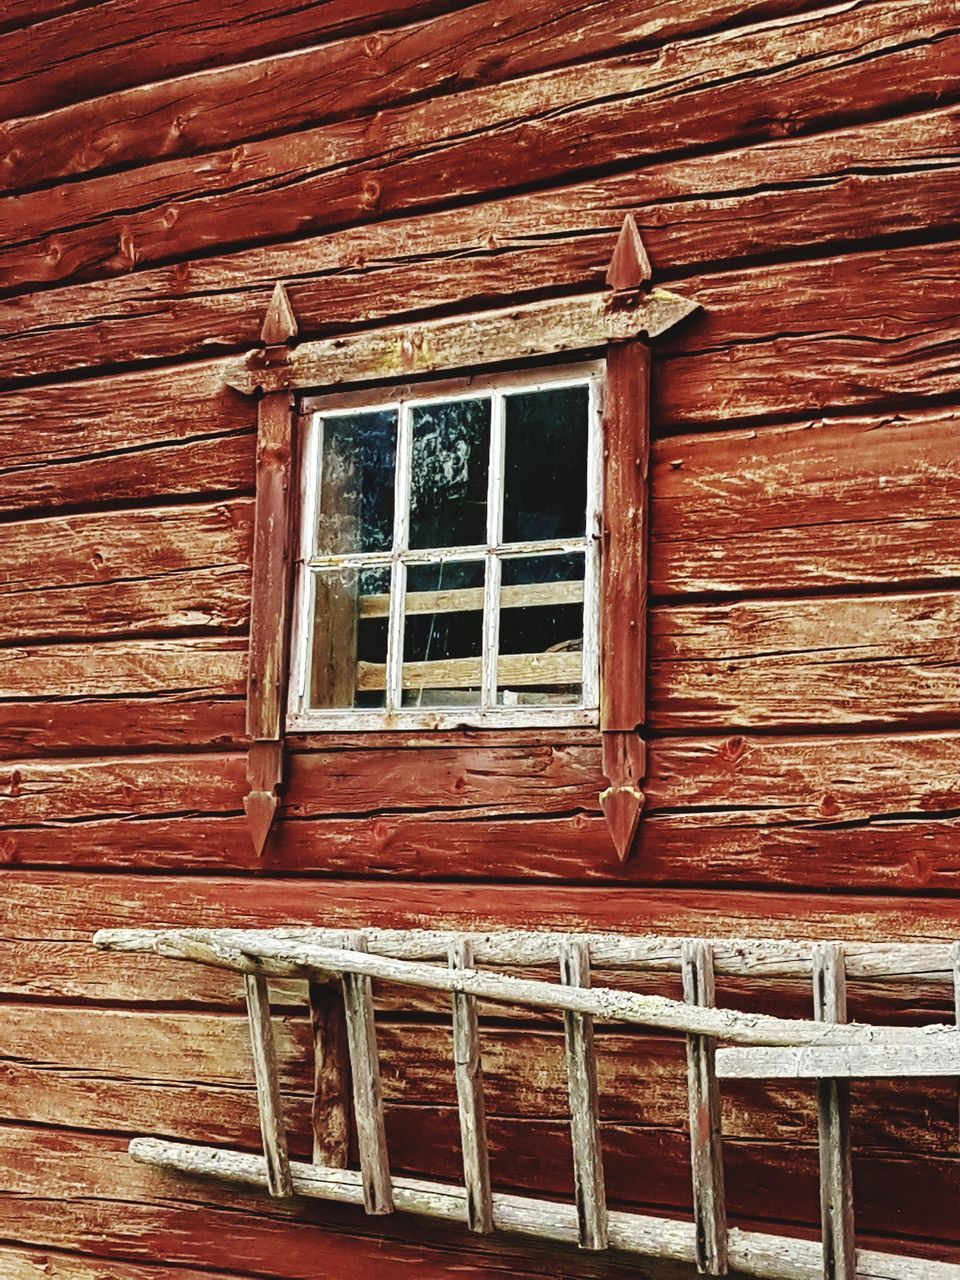 window, architecture, built structure, house, building exterior, no people, wood - material, low angle view, red, outdoors, day, window box